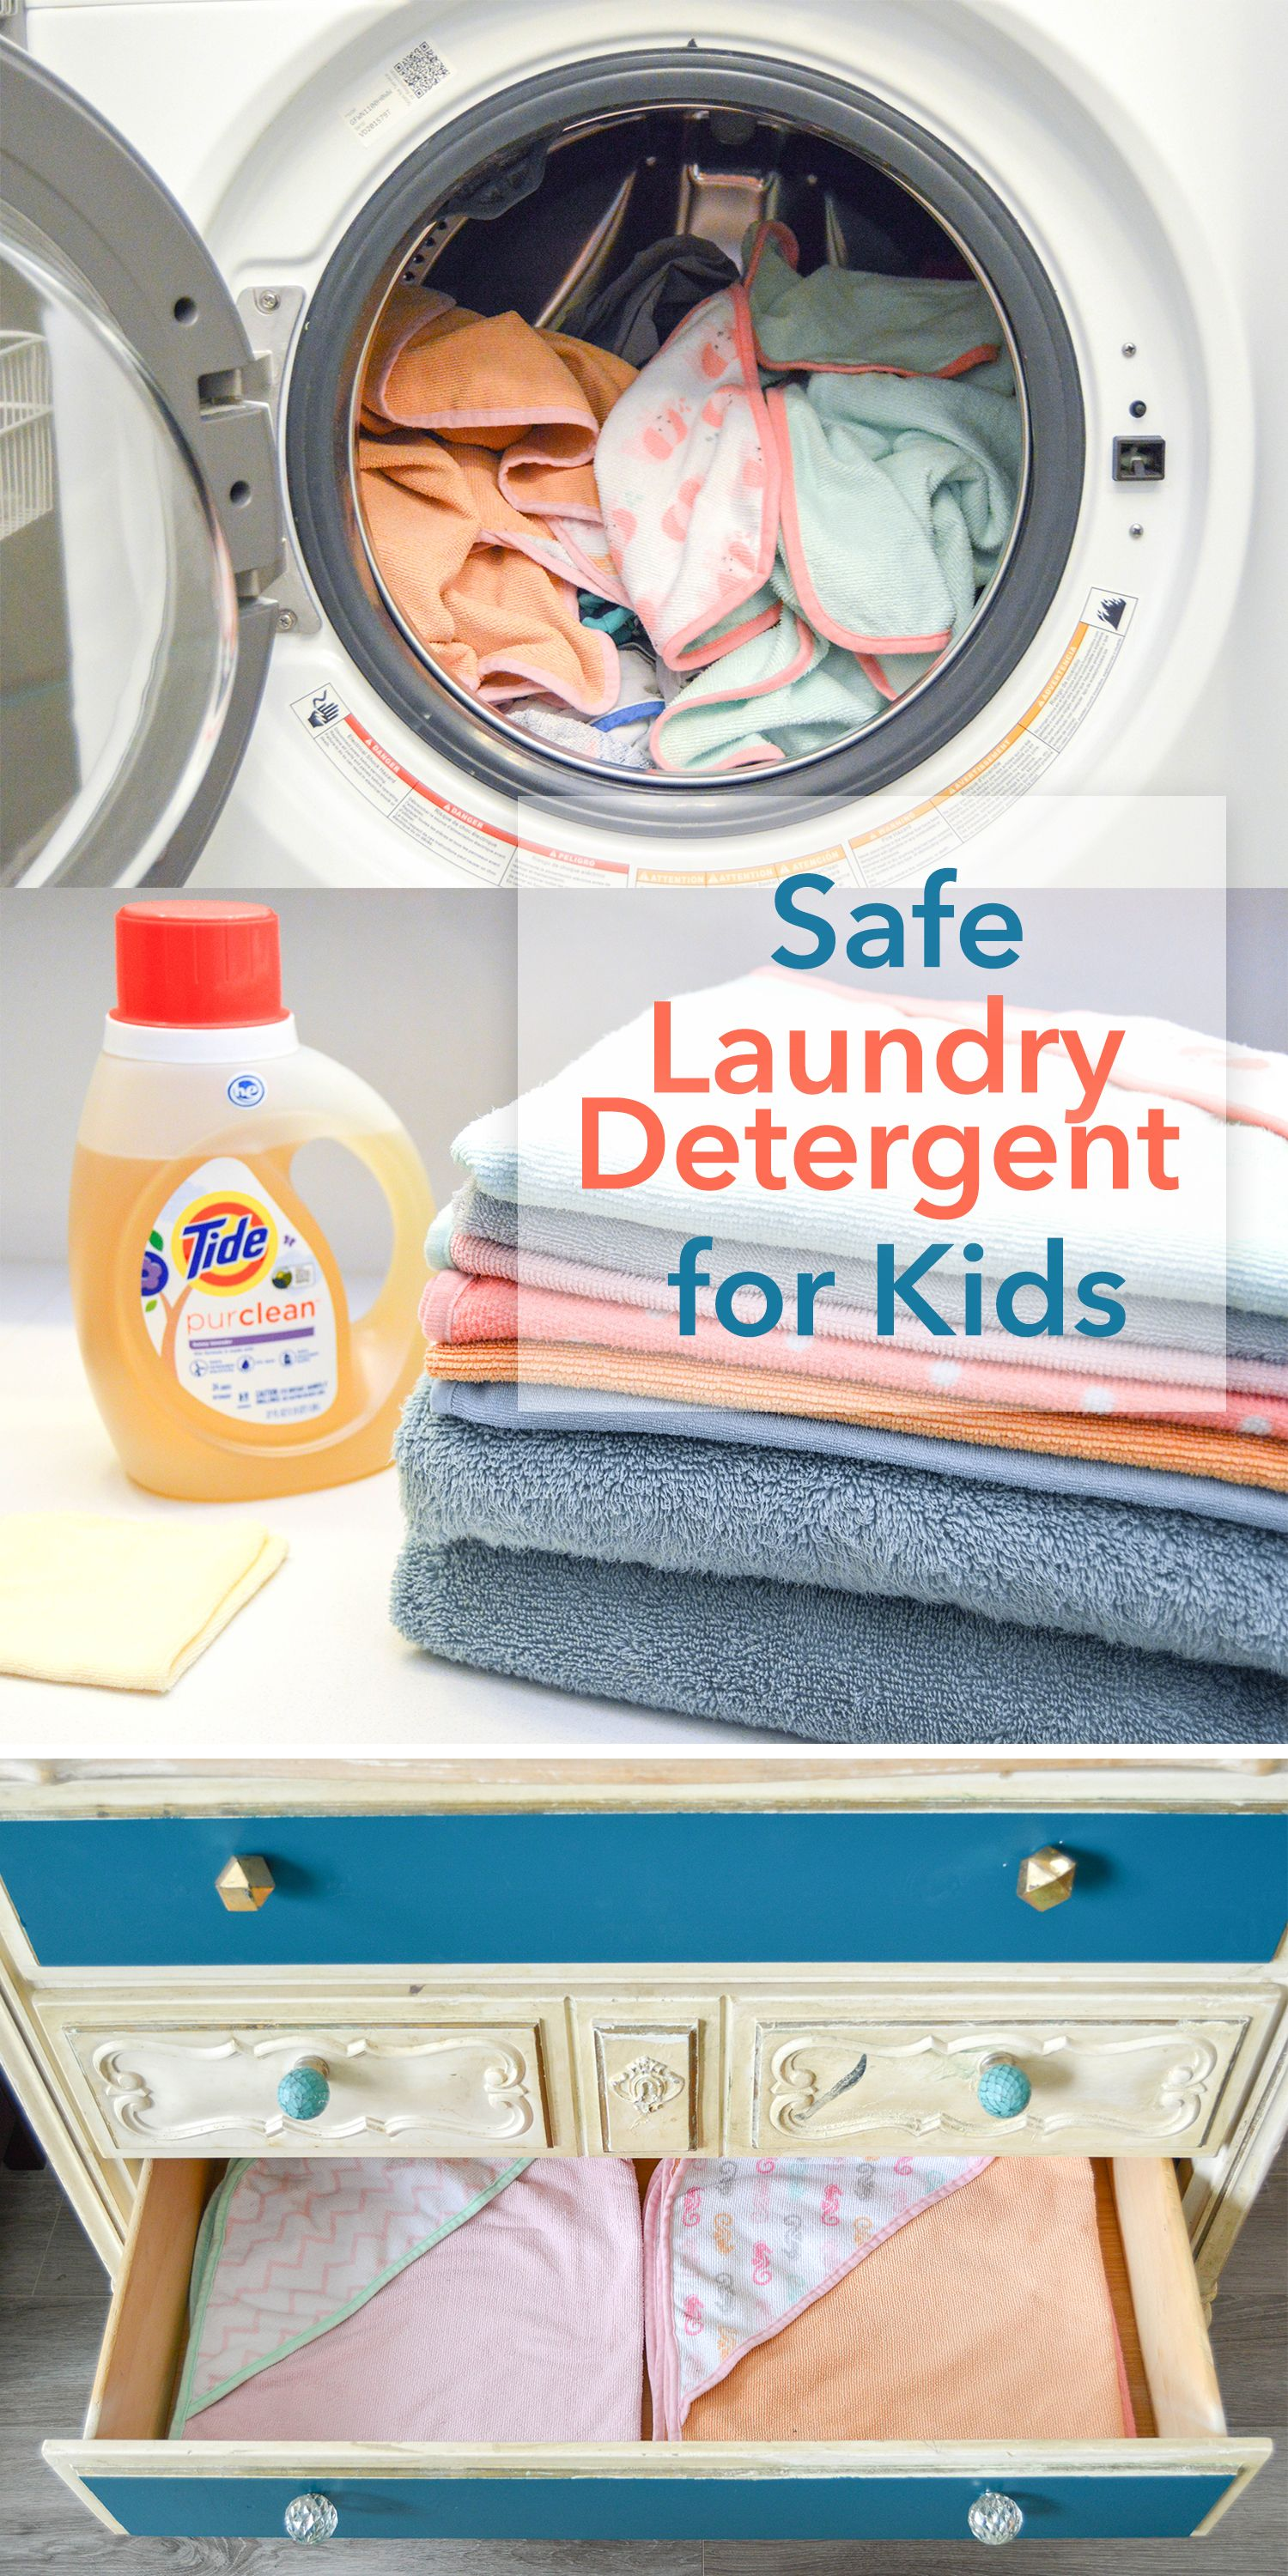 My Current Go To Laundry Detergent For My Kids Why I Choose Tide Purclean To Keep My Kids Clothes Clean Also Good Parenting Kids Parenting Laundry Detergent